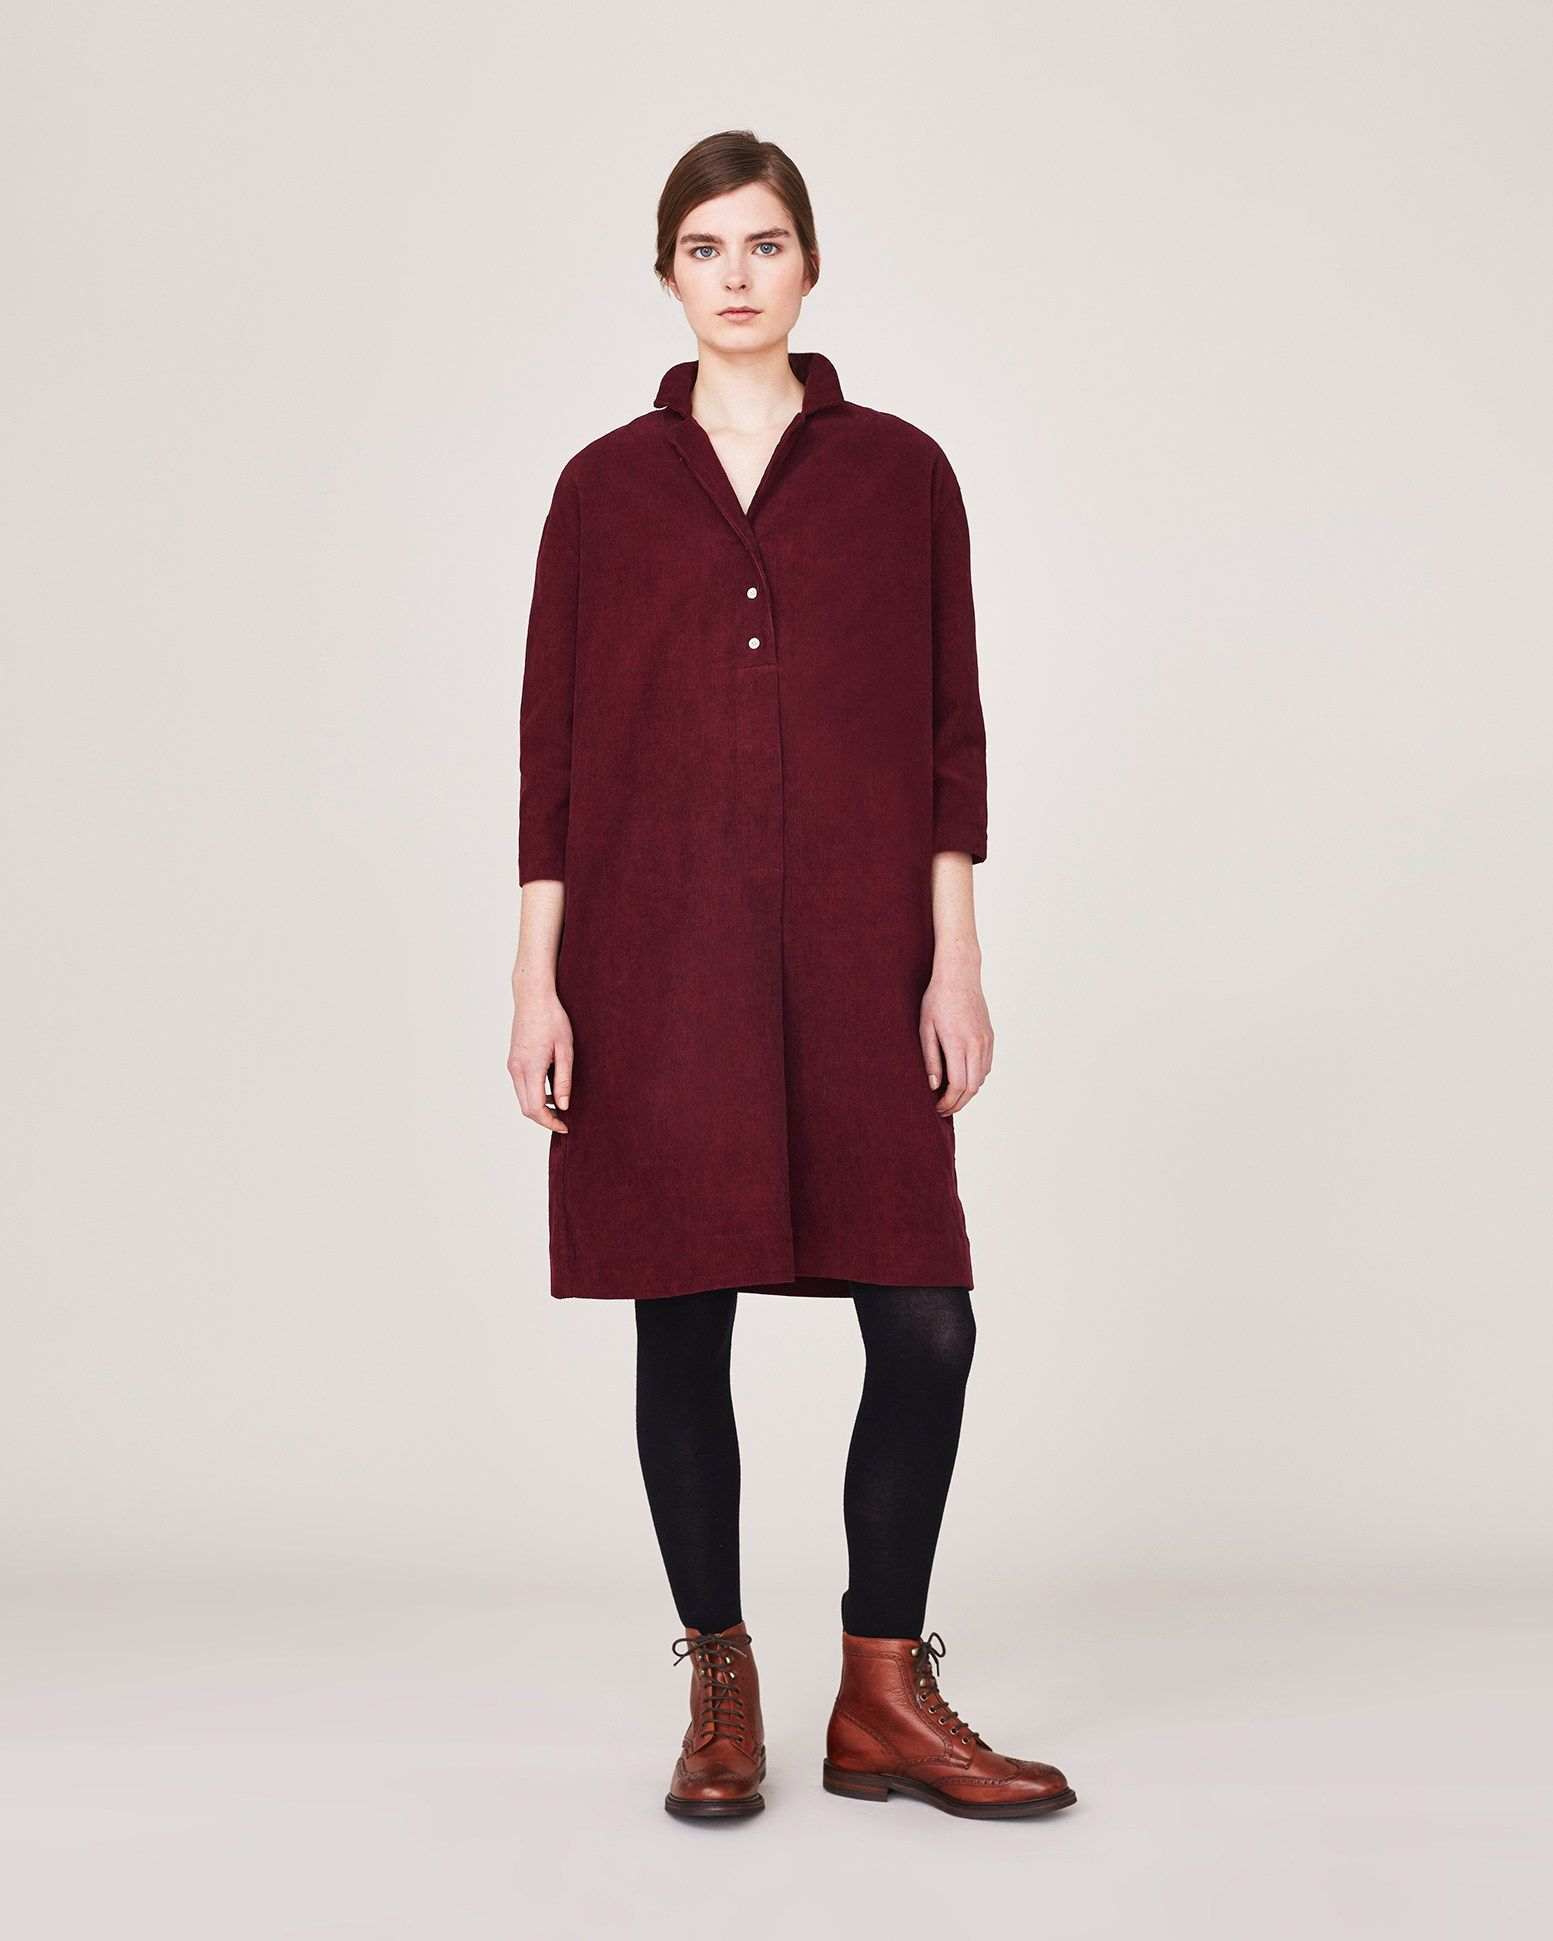 ELVIRE SHIRT DRESS Easy and slightly A-line pull-on shirt dress in soft, supple 11 wale corduroy. Soft collar and lapels with three corozo buttons to fasten. Just below-elbow length sleeves. Box pleat into back